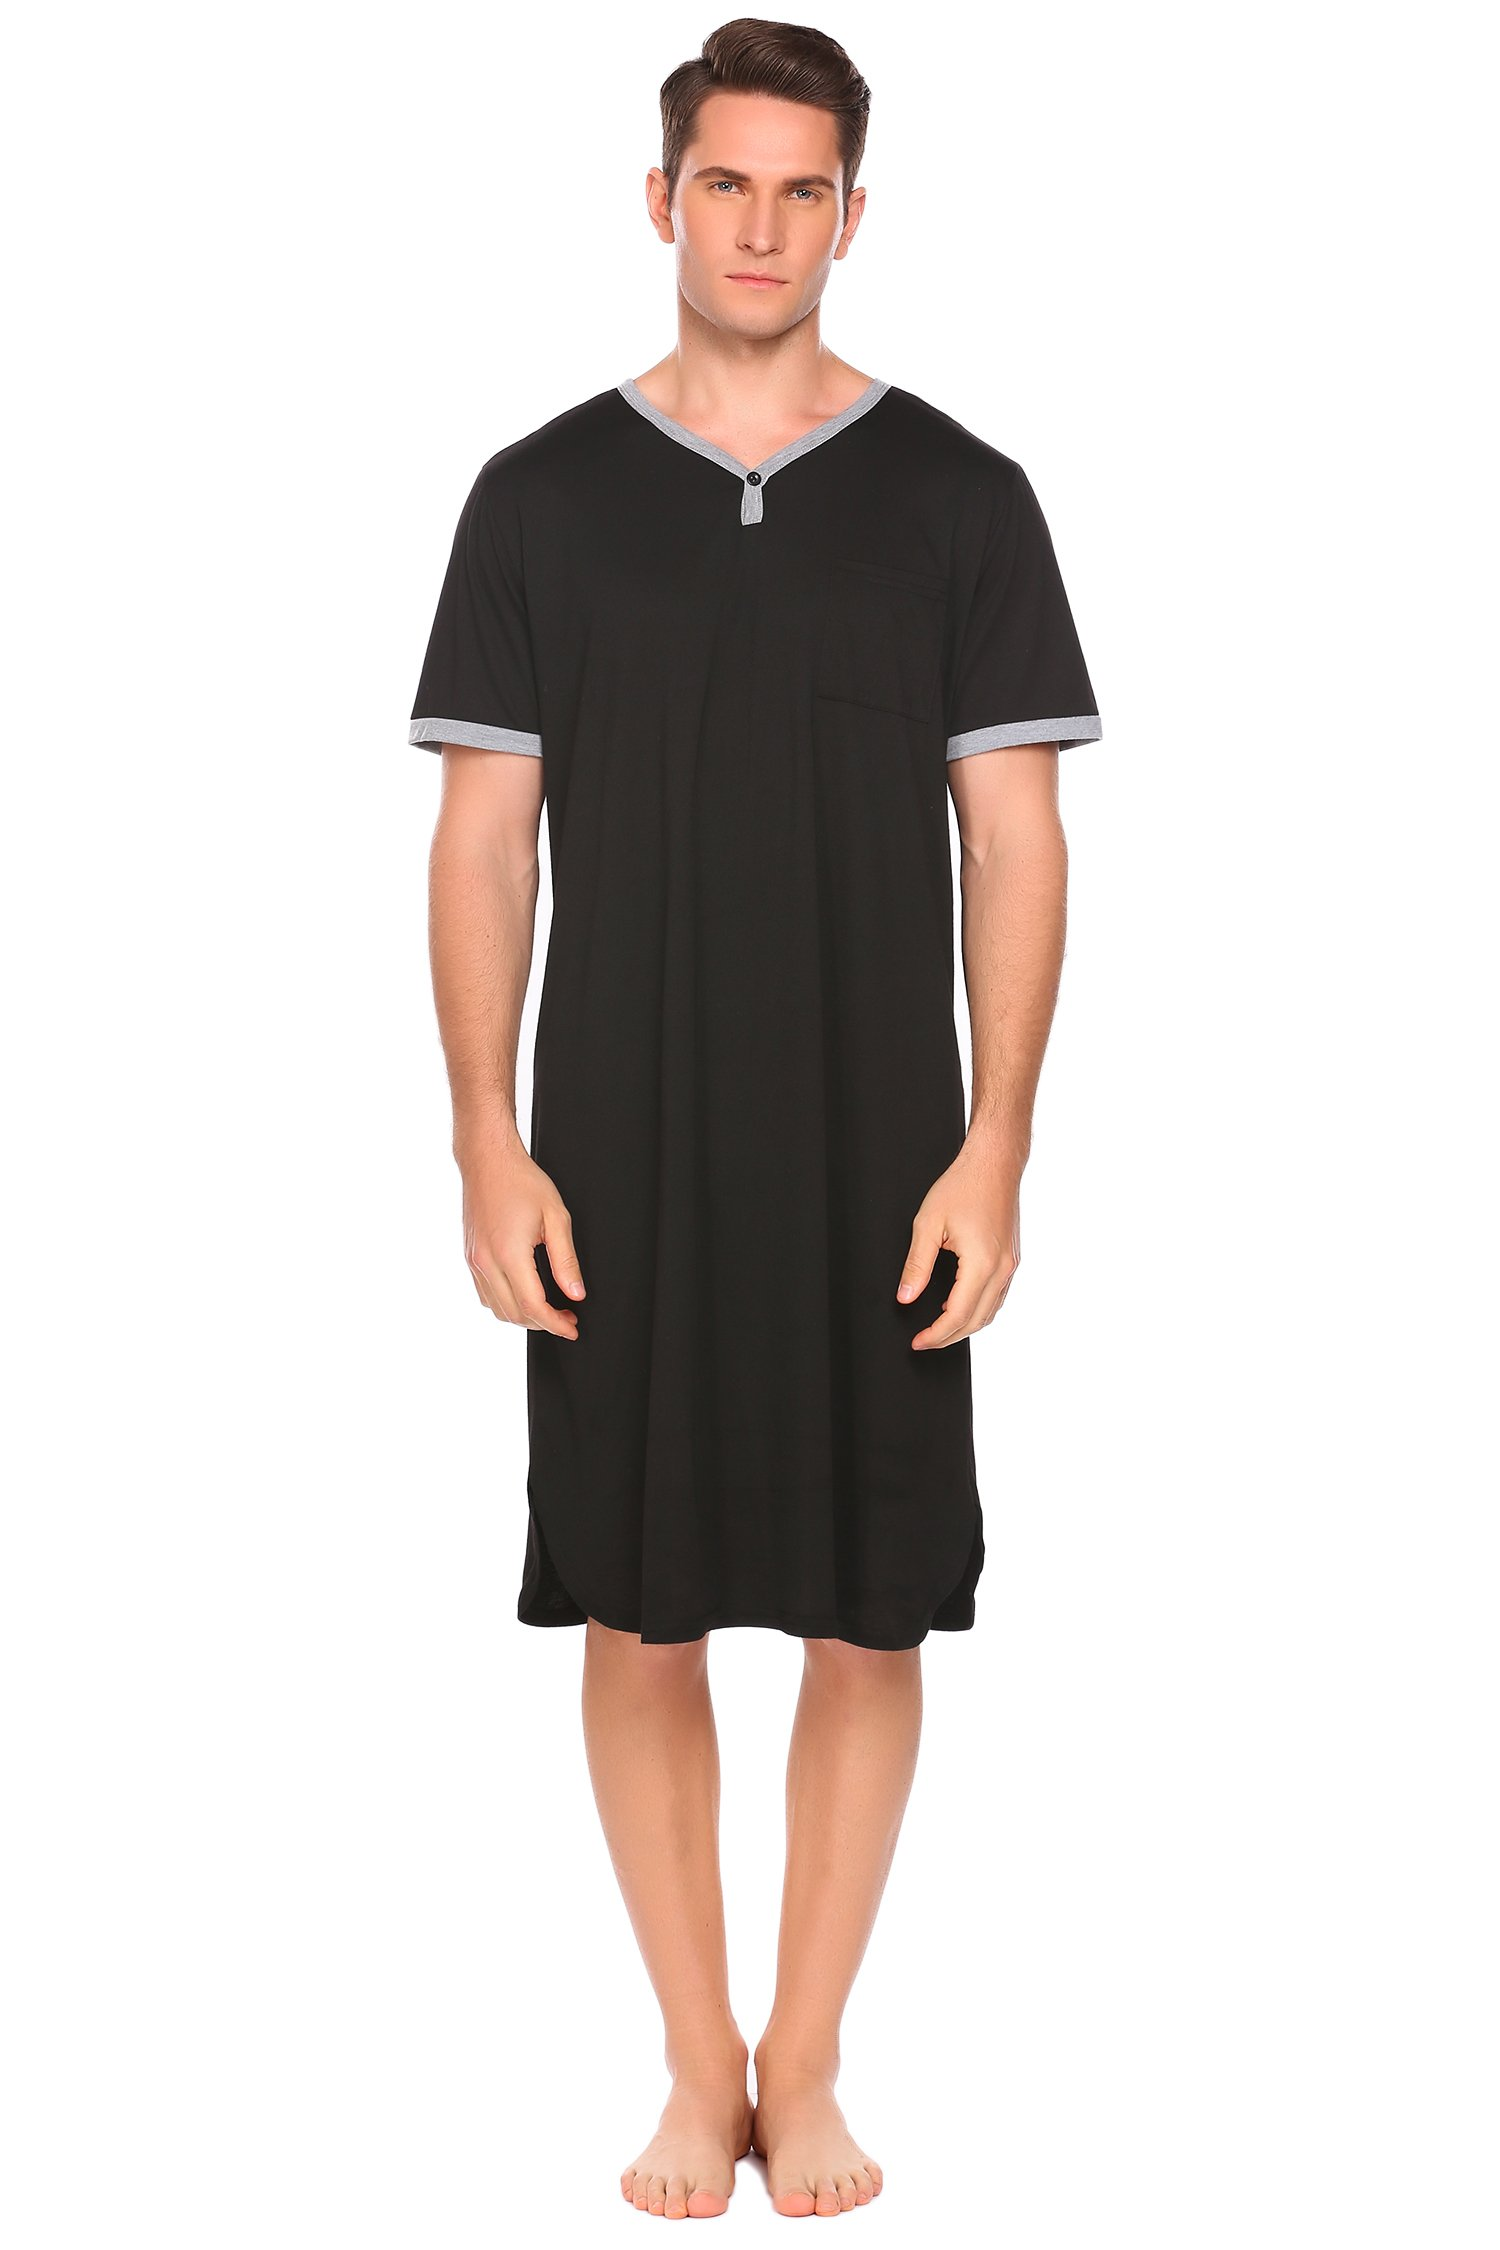 Ekouaer Mens Nightshirt, Viscose Long Sleep Shirt (Black, Medium by Ekouaer